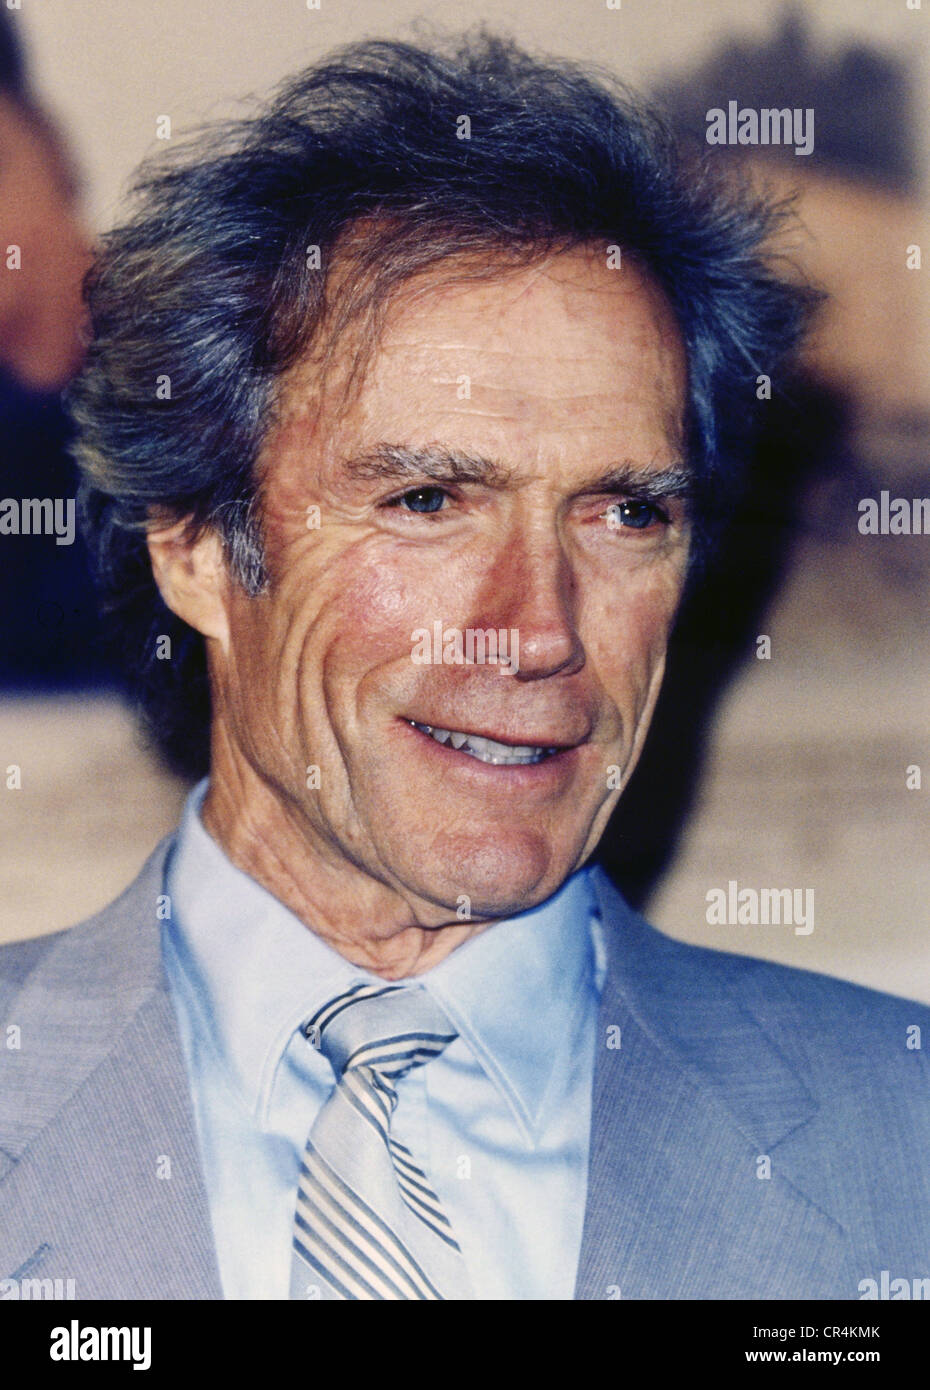 Eastwood, Clint, * 31.5.1930, American actor, portrait, Hamburg Film Festival, Germany, 19.9.1995, Additional-Rights - Stock Image